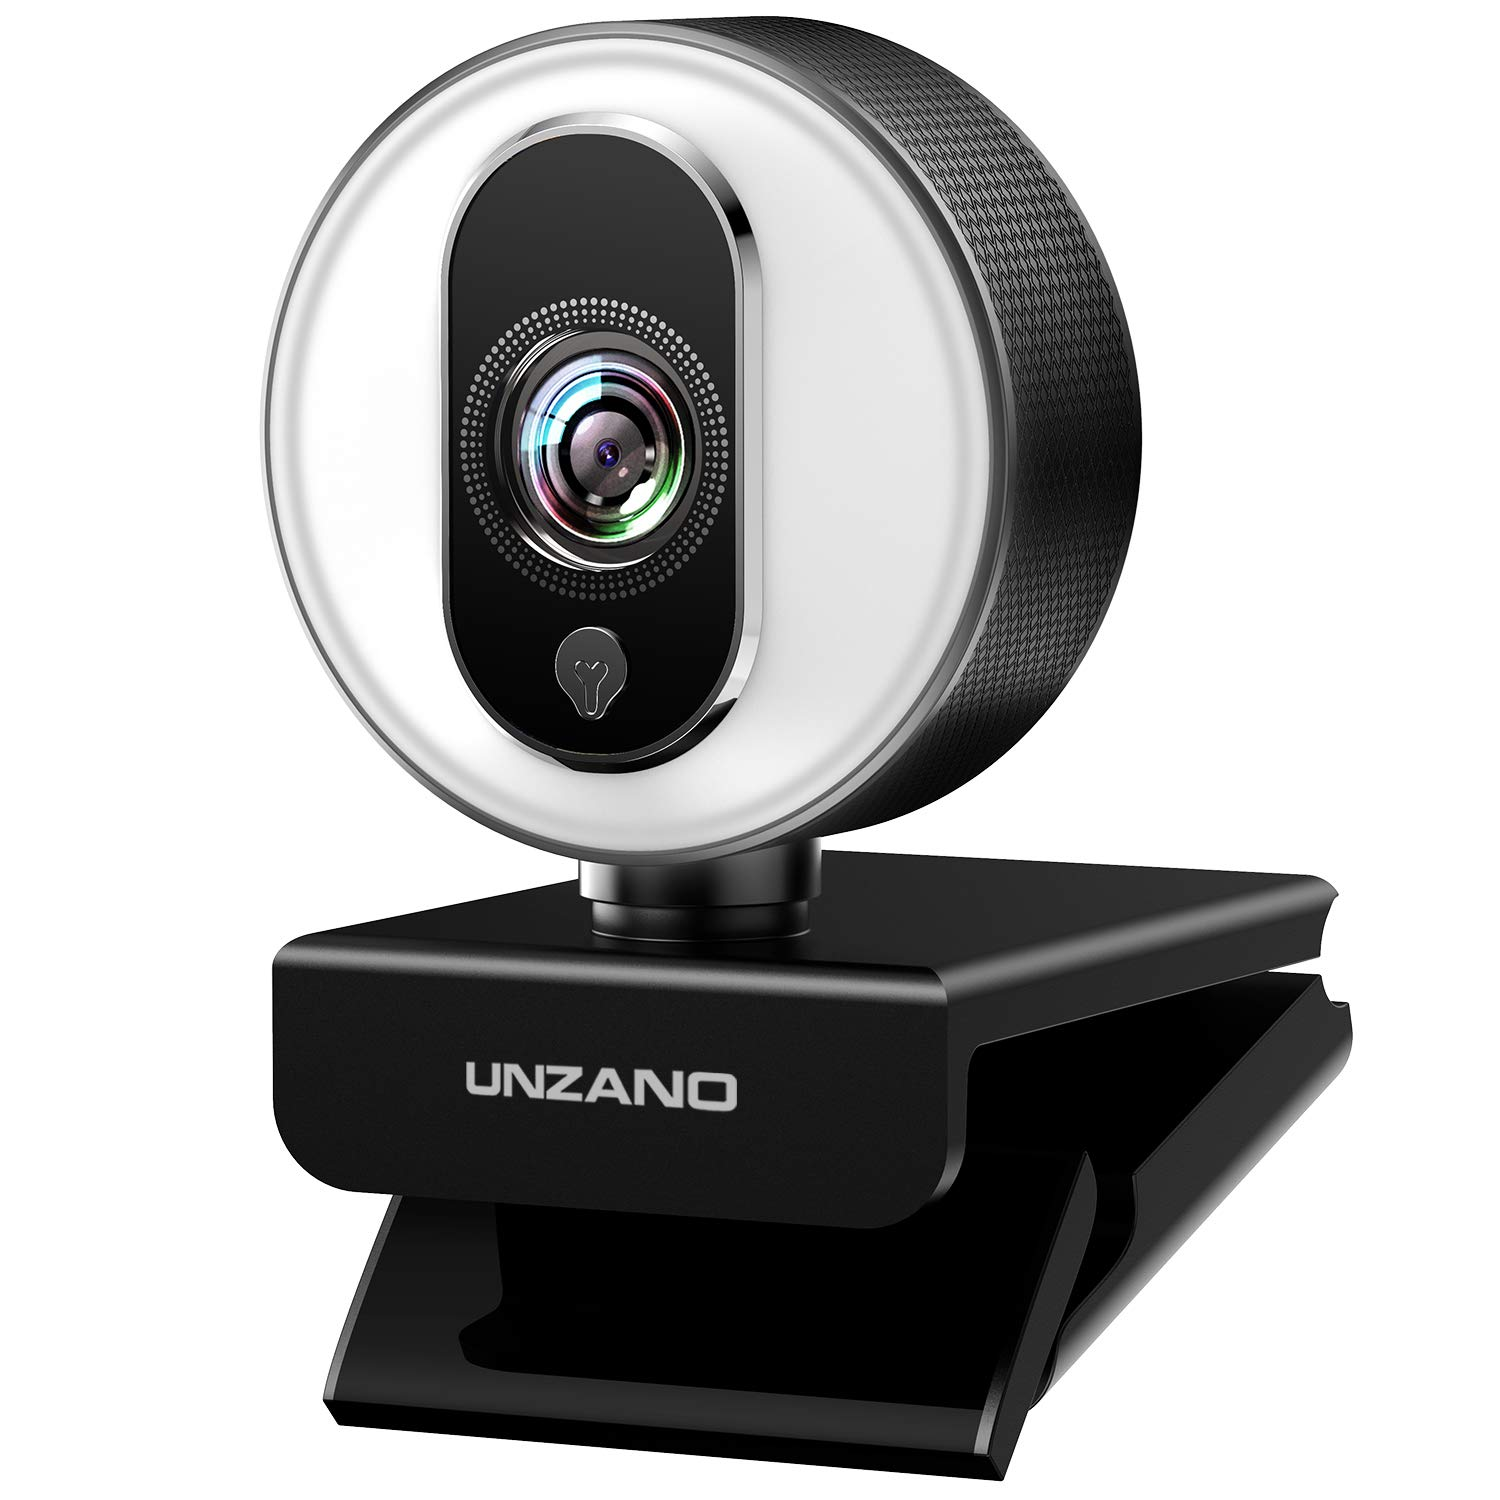 HD Webcam 1080P for Streaming With Ring Light,External Computer Web Camera With Dual Microphone,Autofocus Camera for PC Laptop Desktop Mac Video Calling Recording Skype Xbox One YouTube OBS